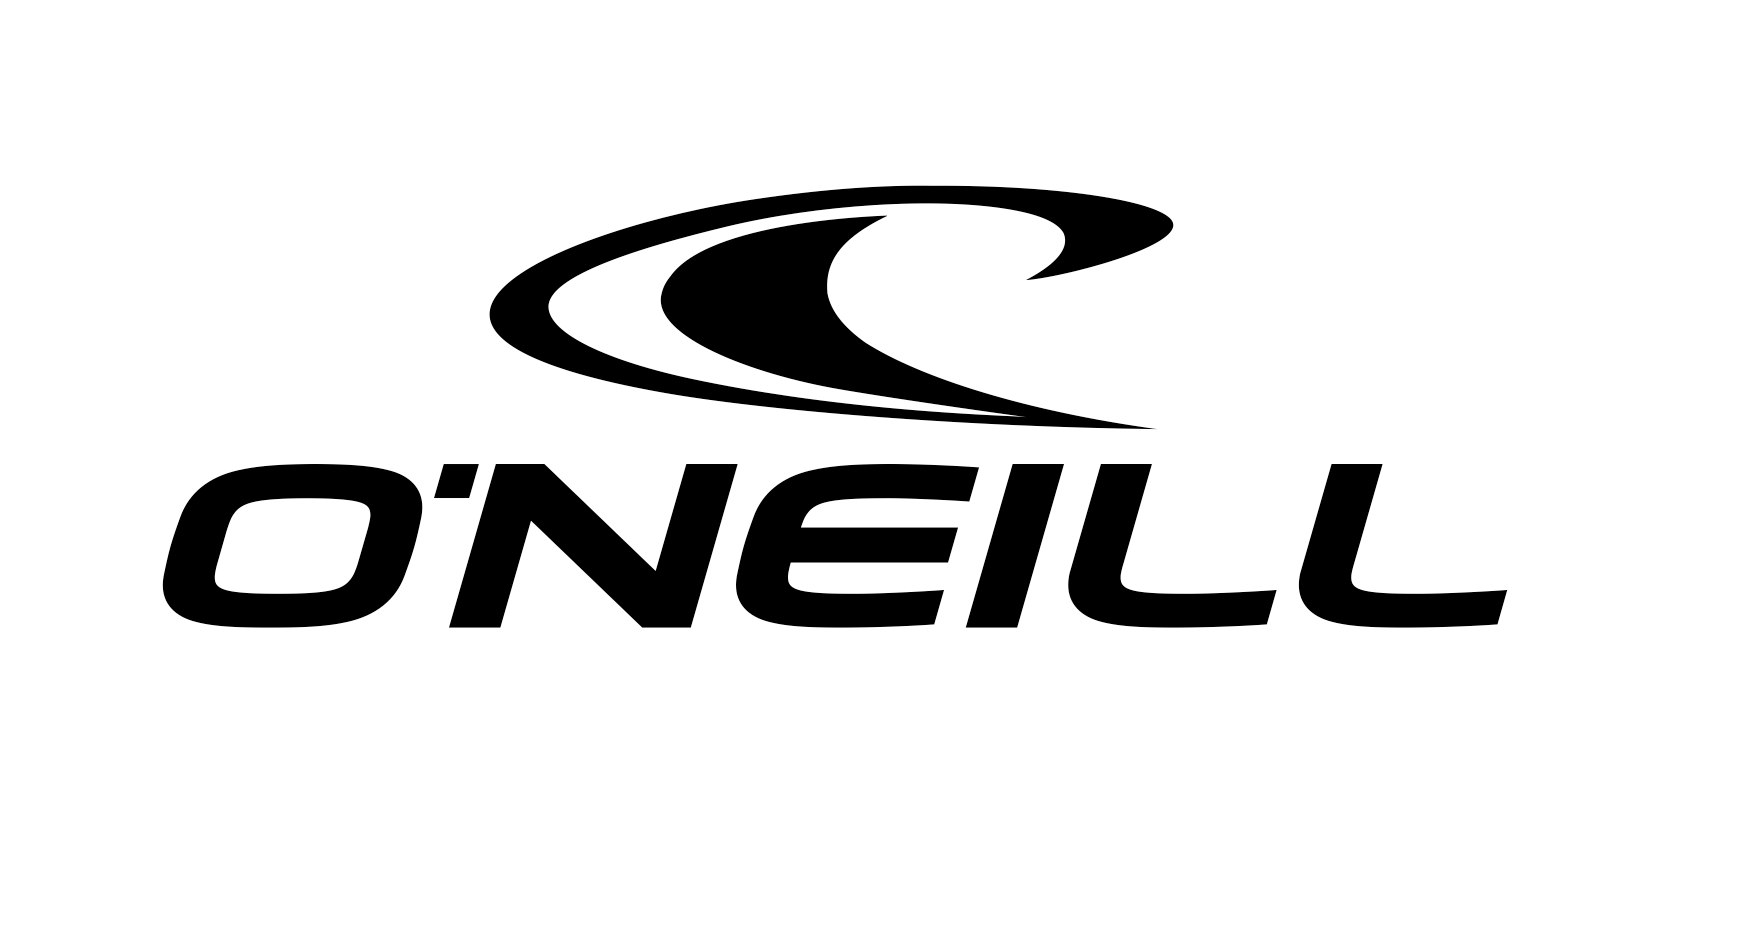 O'Neill logo - White | Surf logo, Surfing, Surf brands